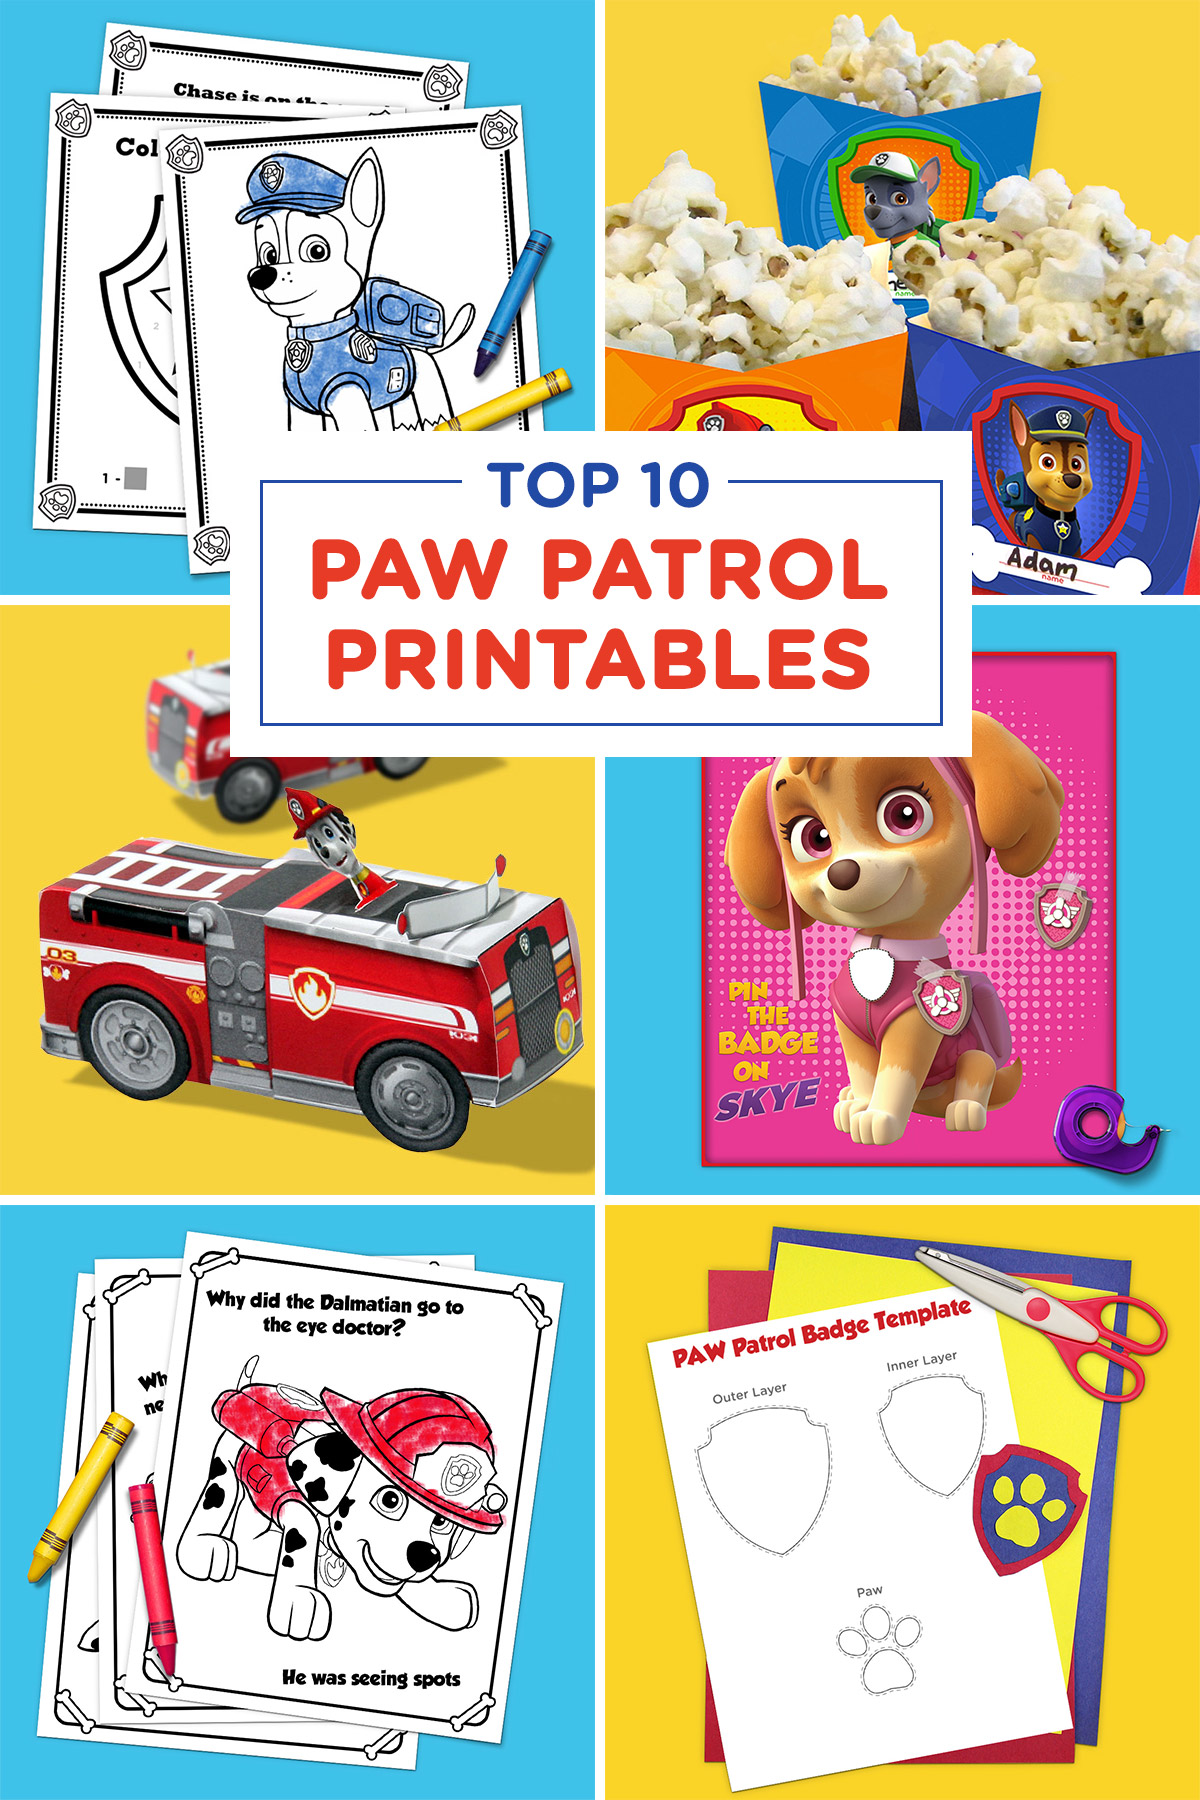 Top 10 PAW Patrol Printables